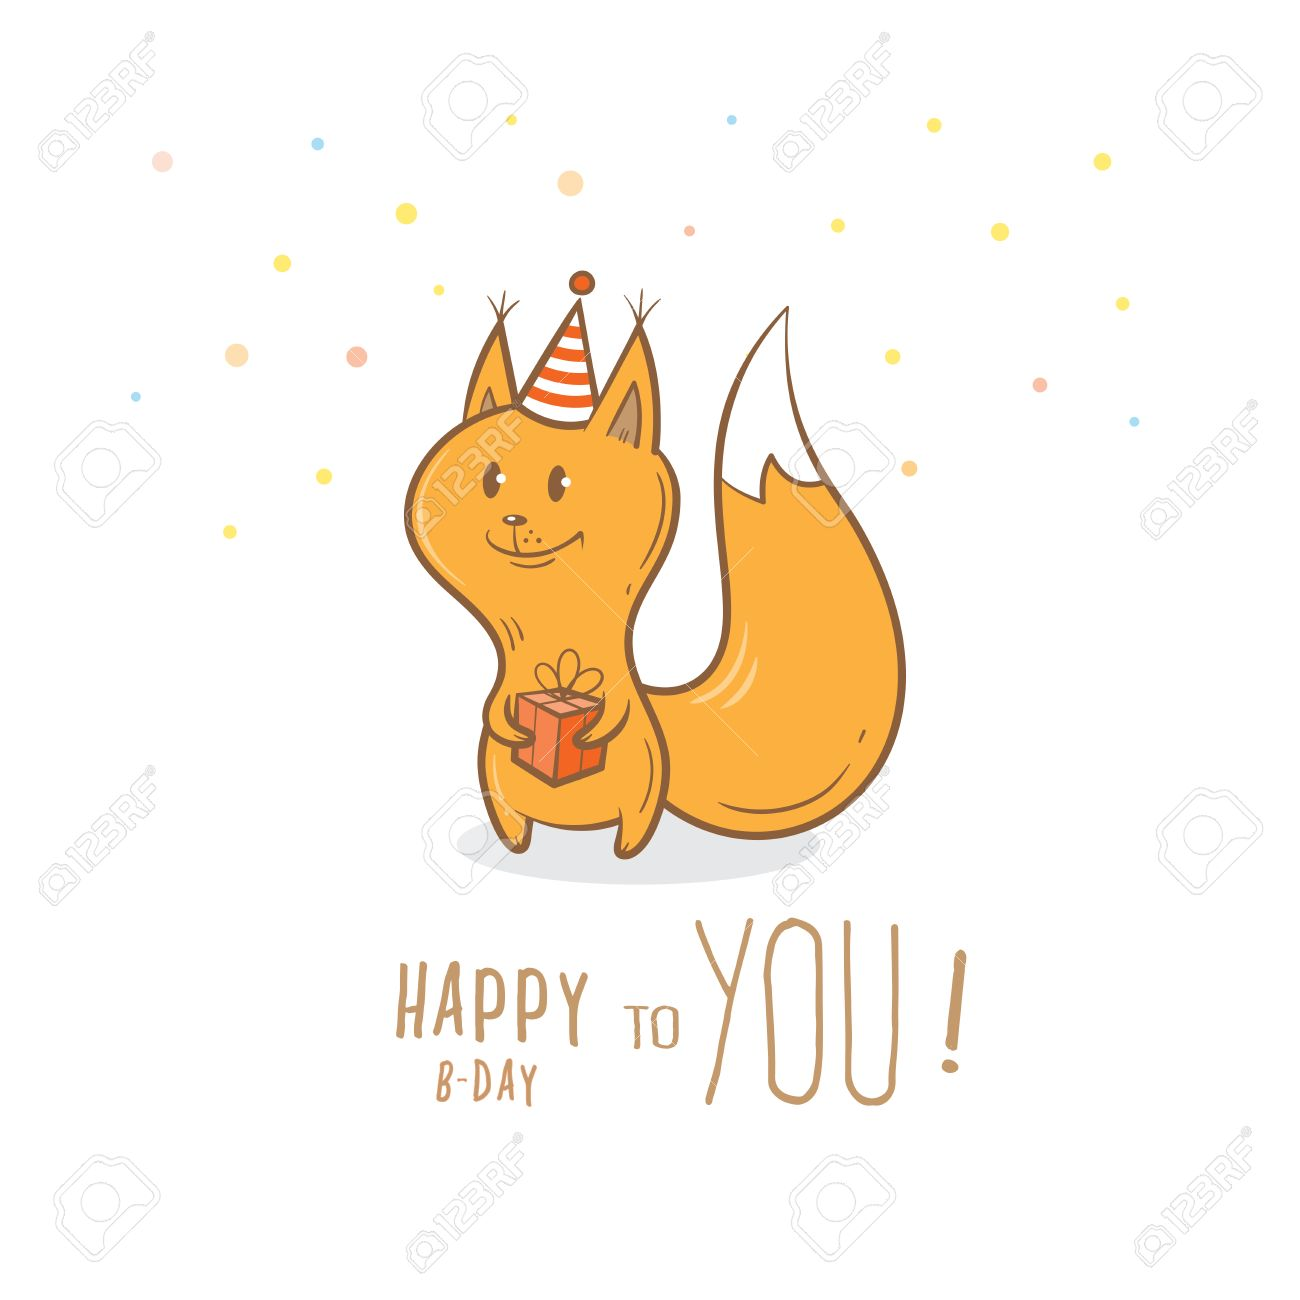 Birthday Card With Cute Cartoon Squirrel In Party Hat Little Funny Animal Childrens Illustration